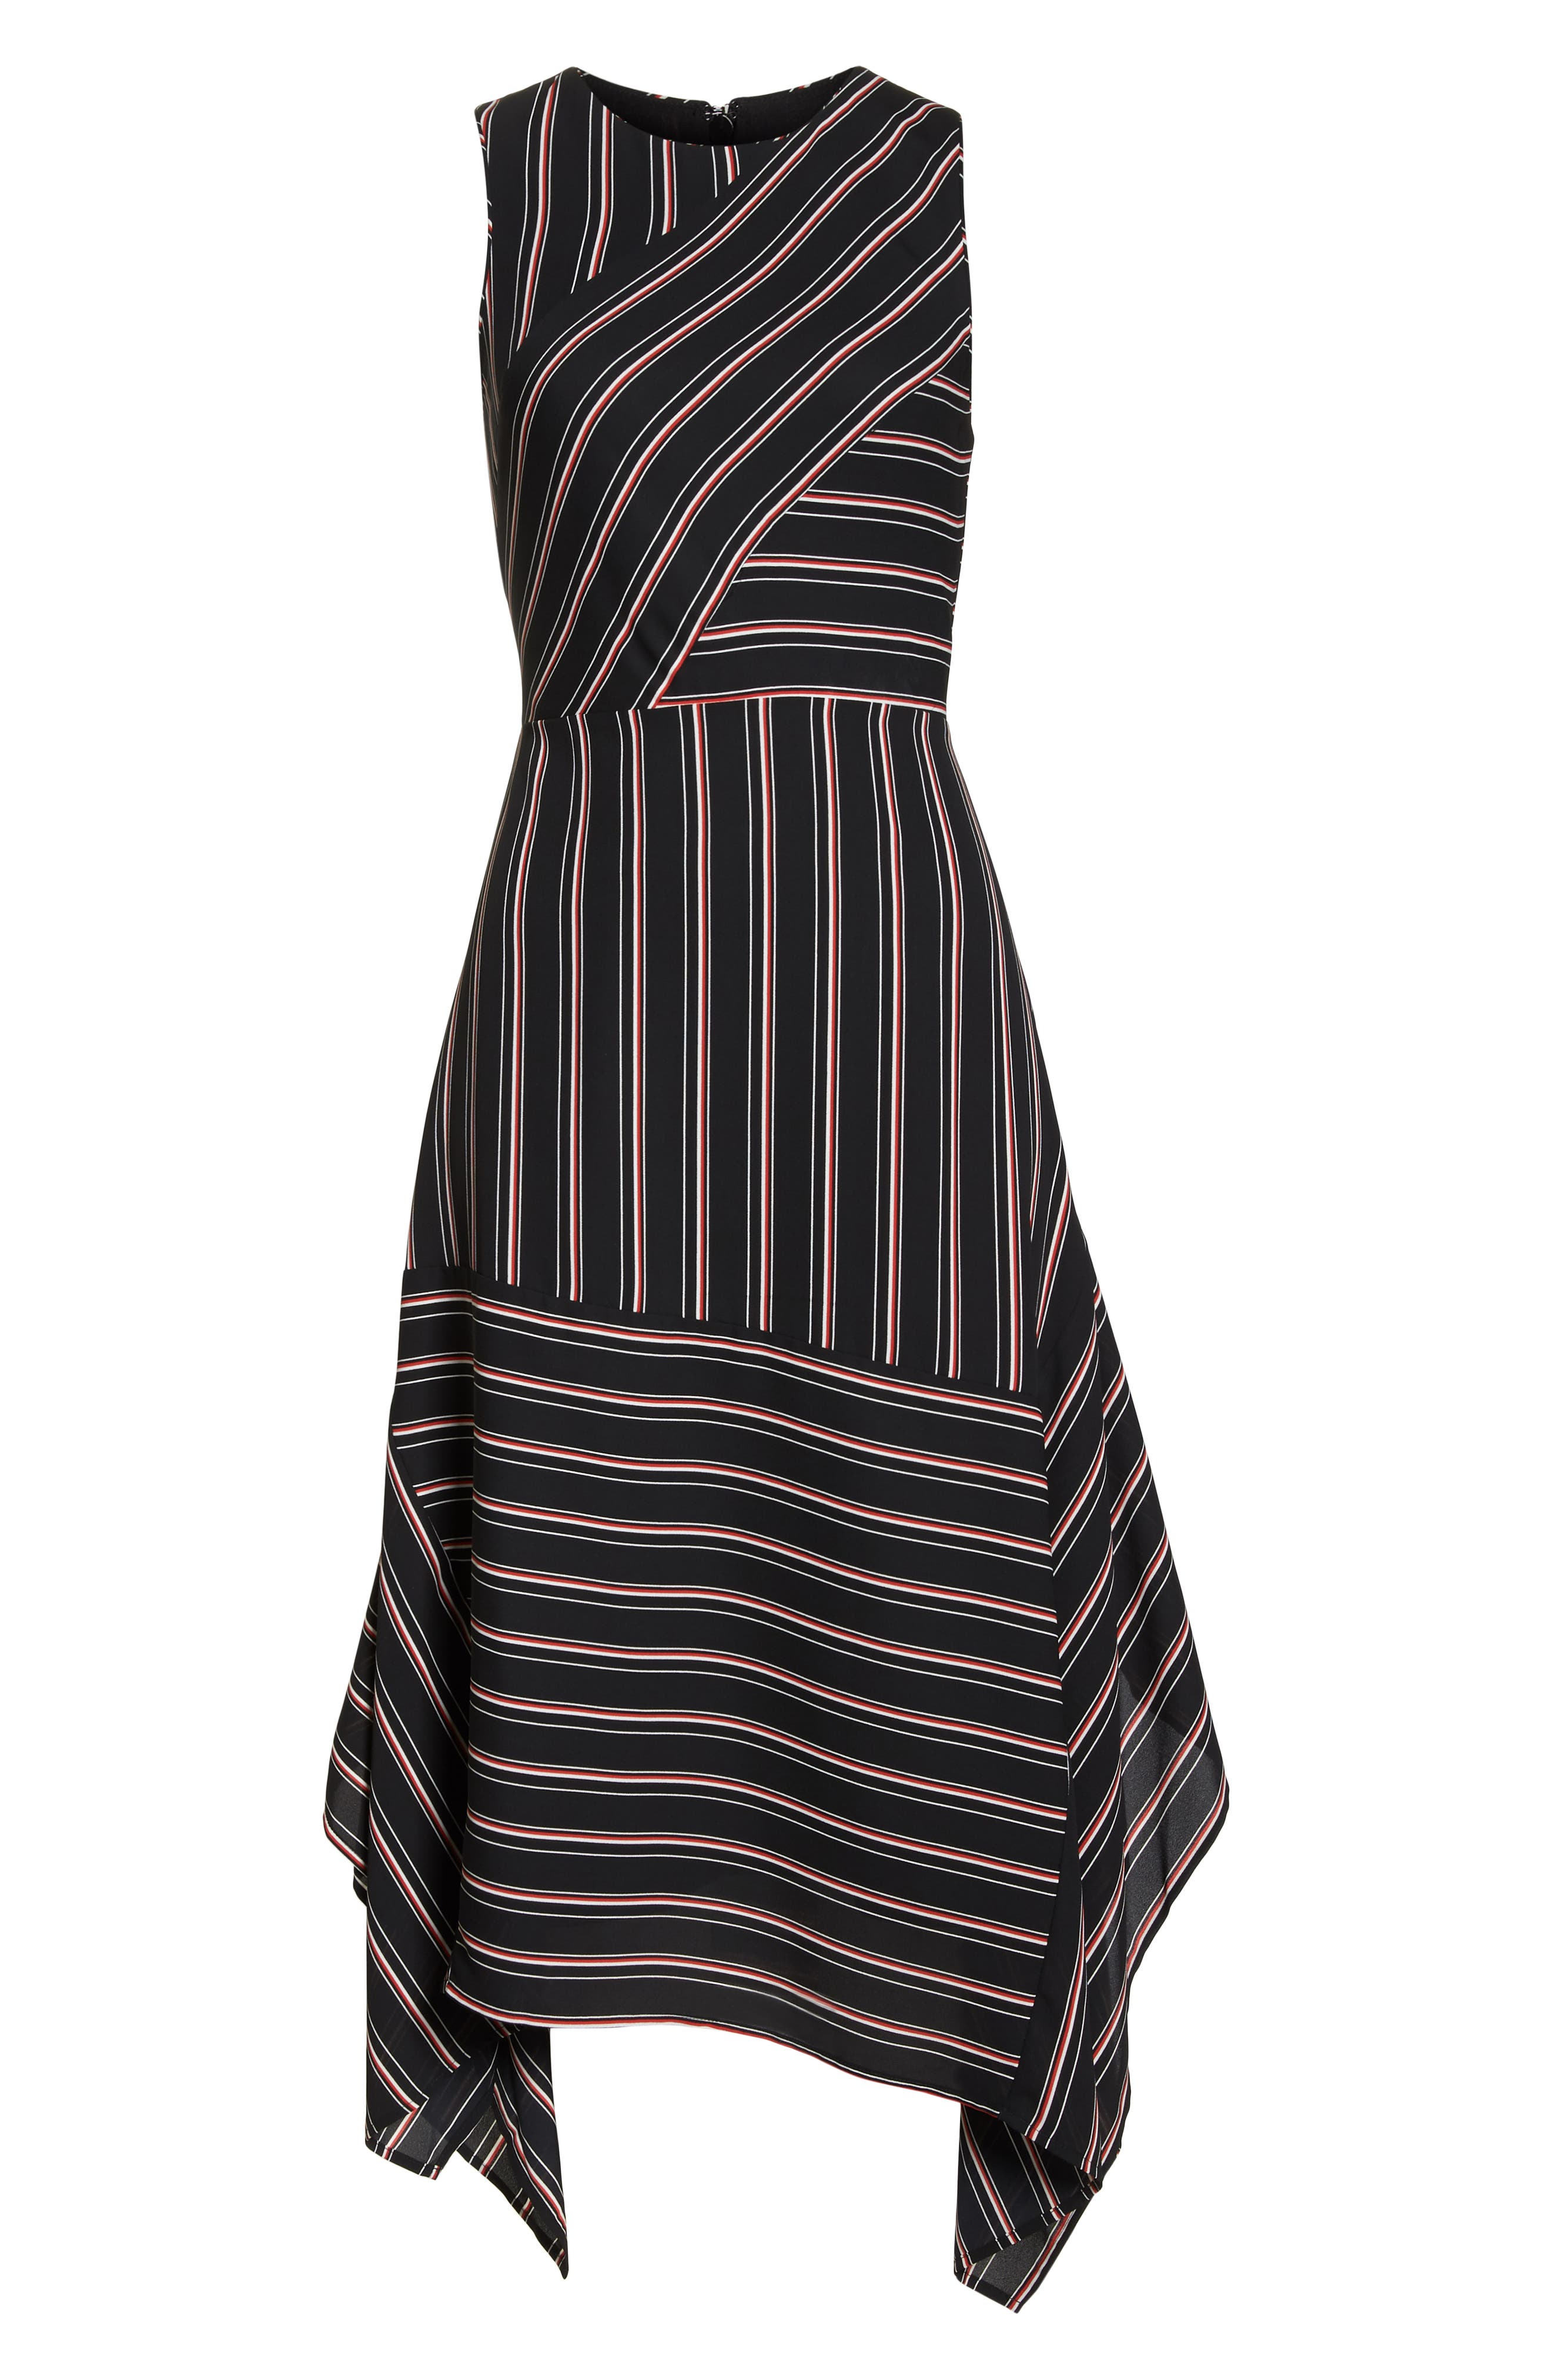 Mix Stripe Midi Dress,                             Alternate thumbnail 6, color,                             BLACK STRIPE MIX COMBO